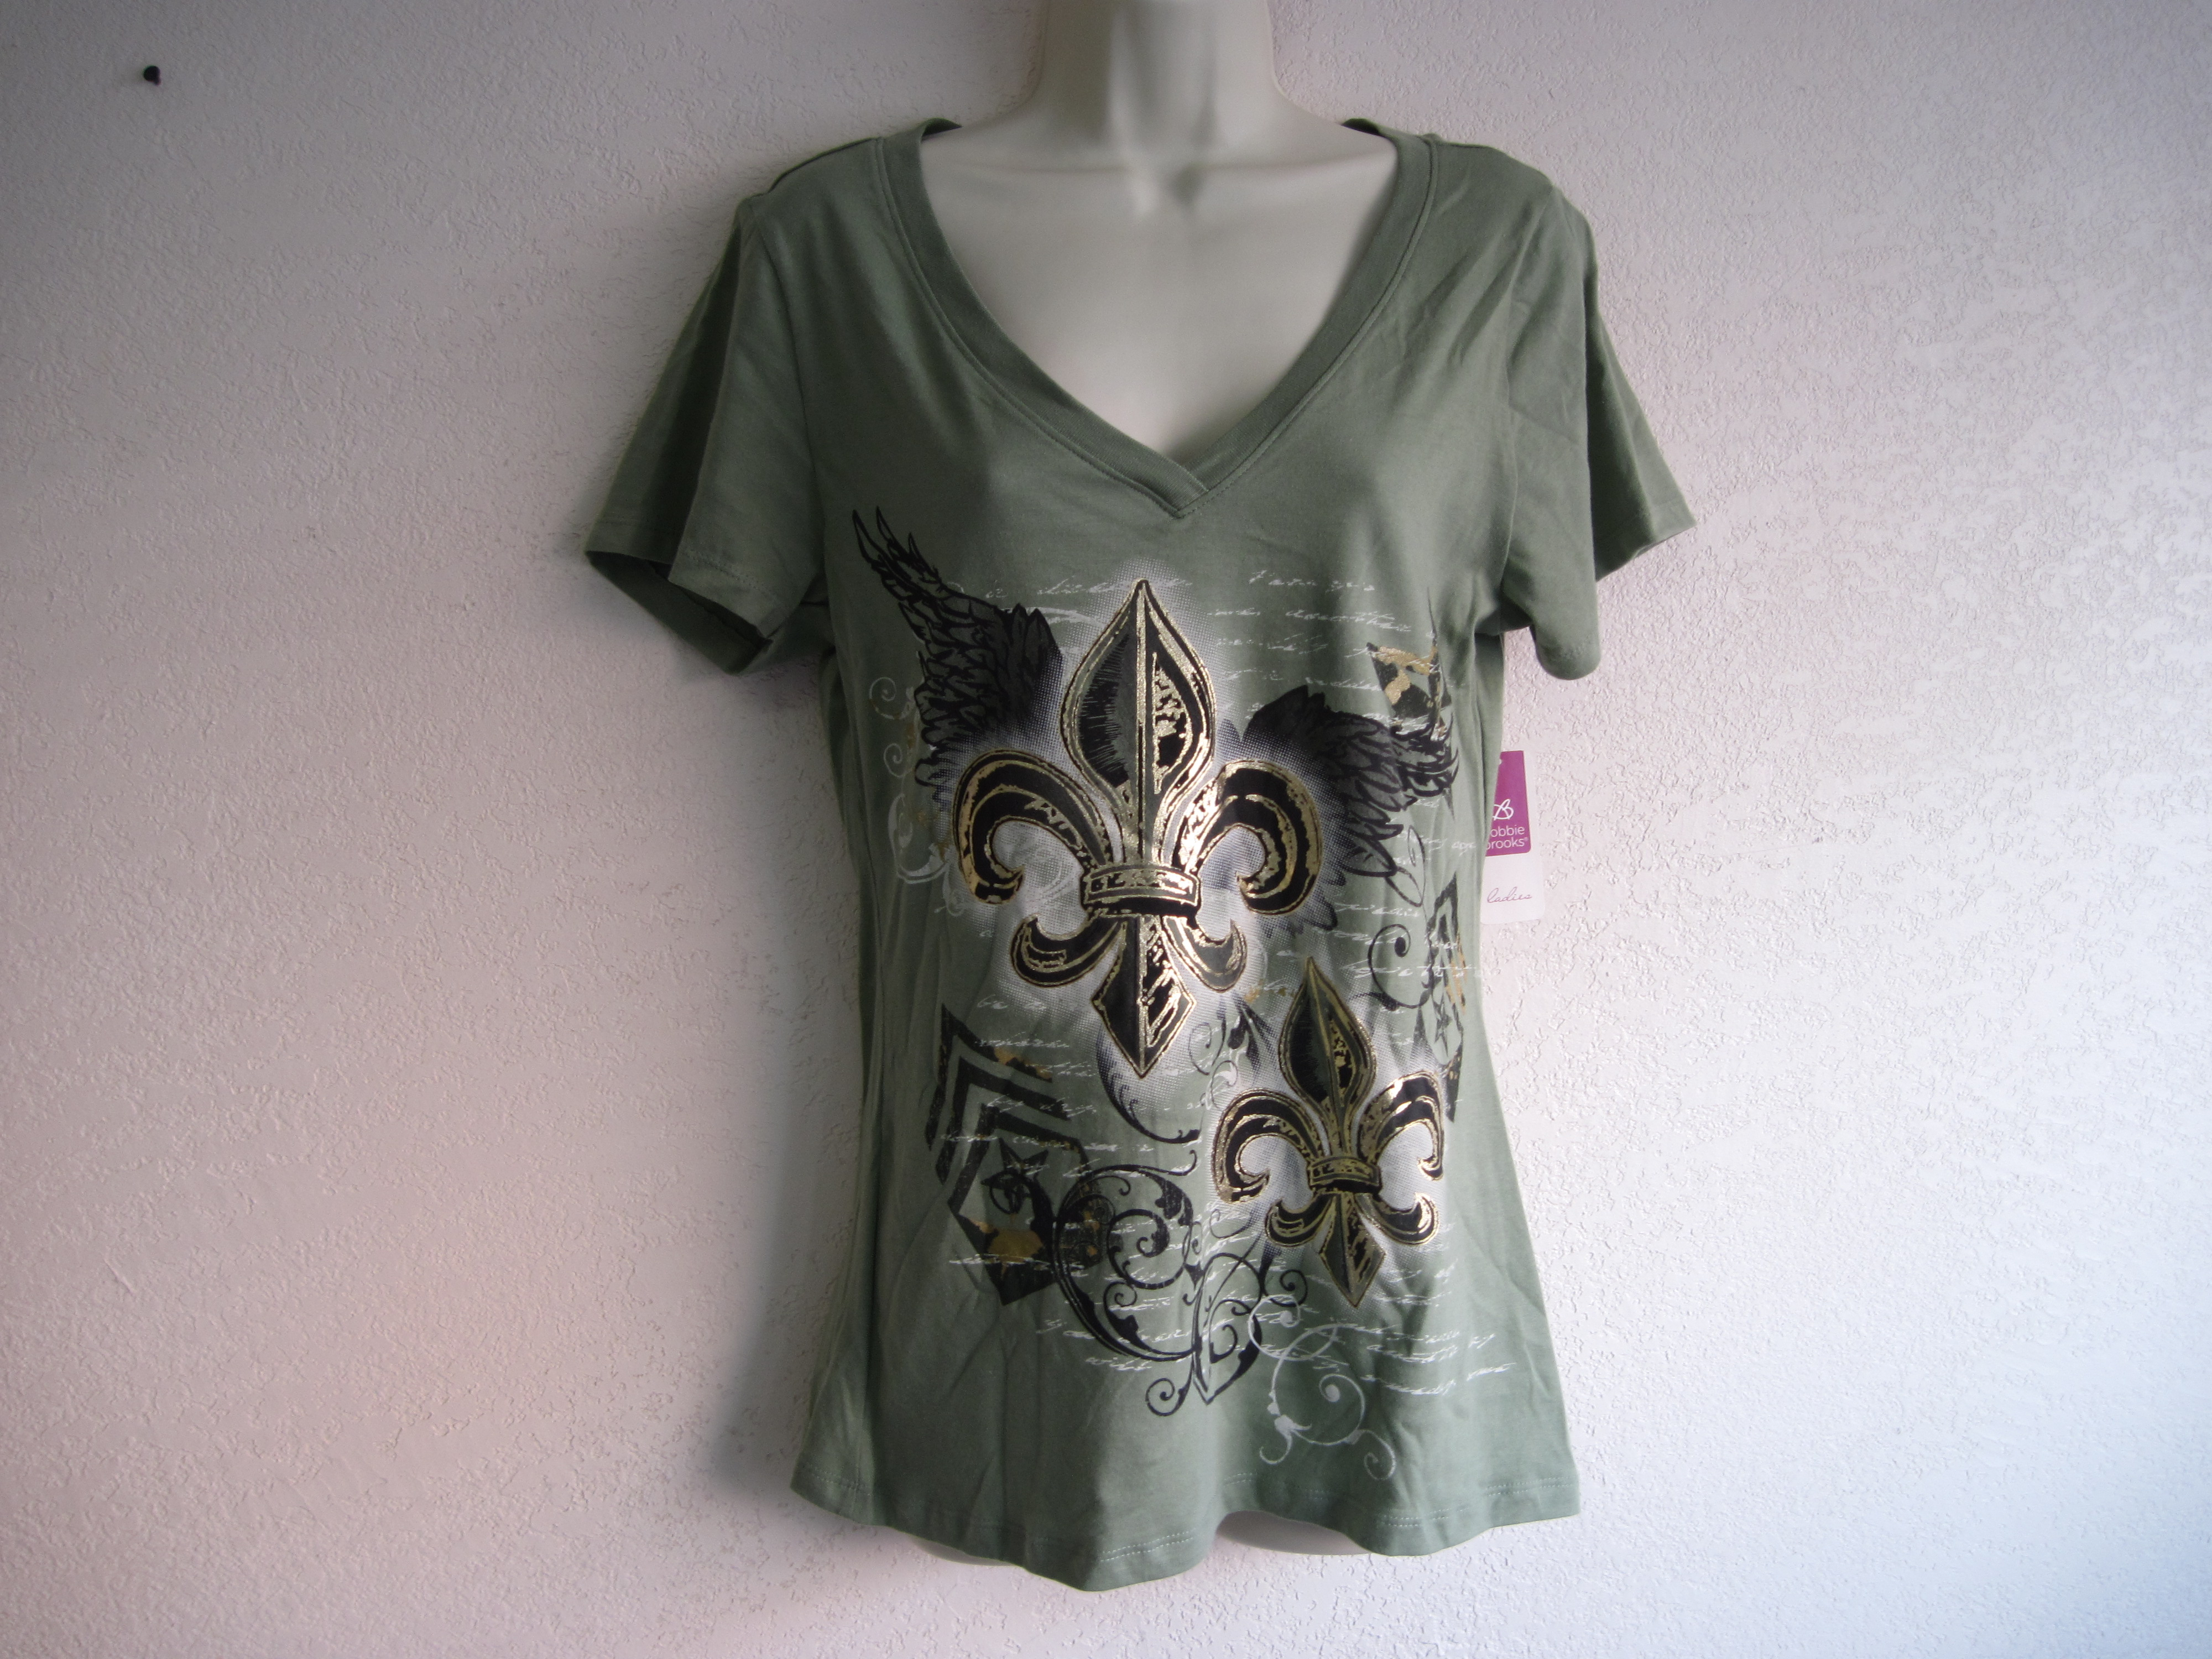 Bobbie Brooks Sz M 8-10 V-Neck Graphic Tee(olive green)